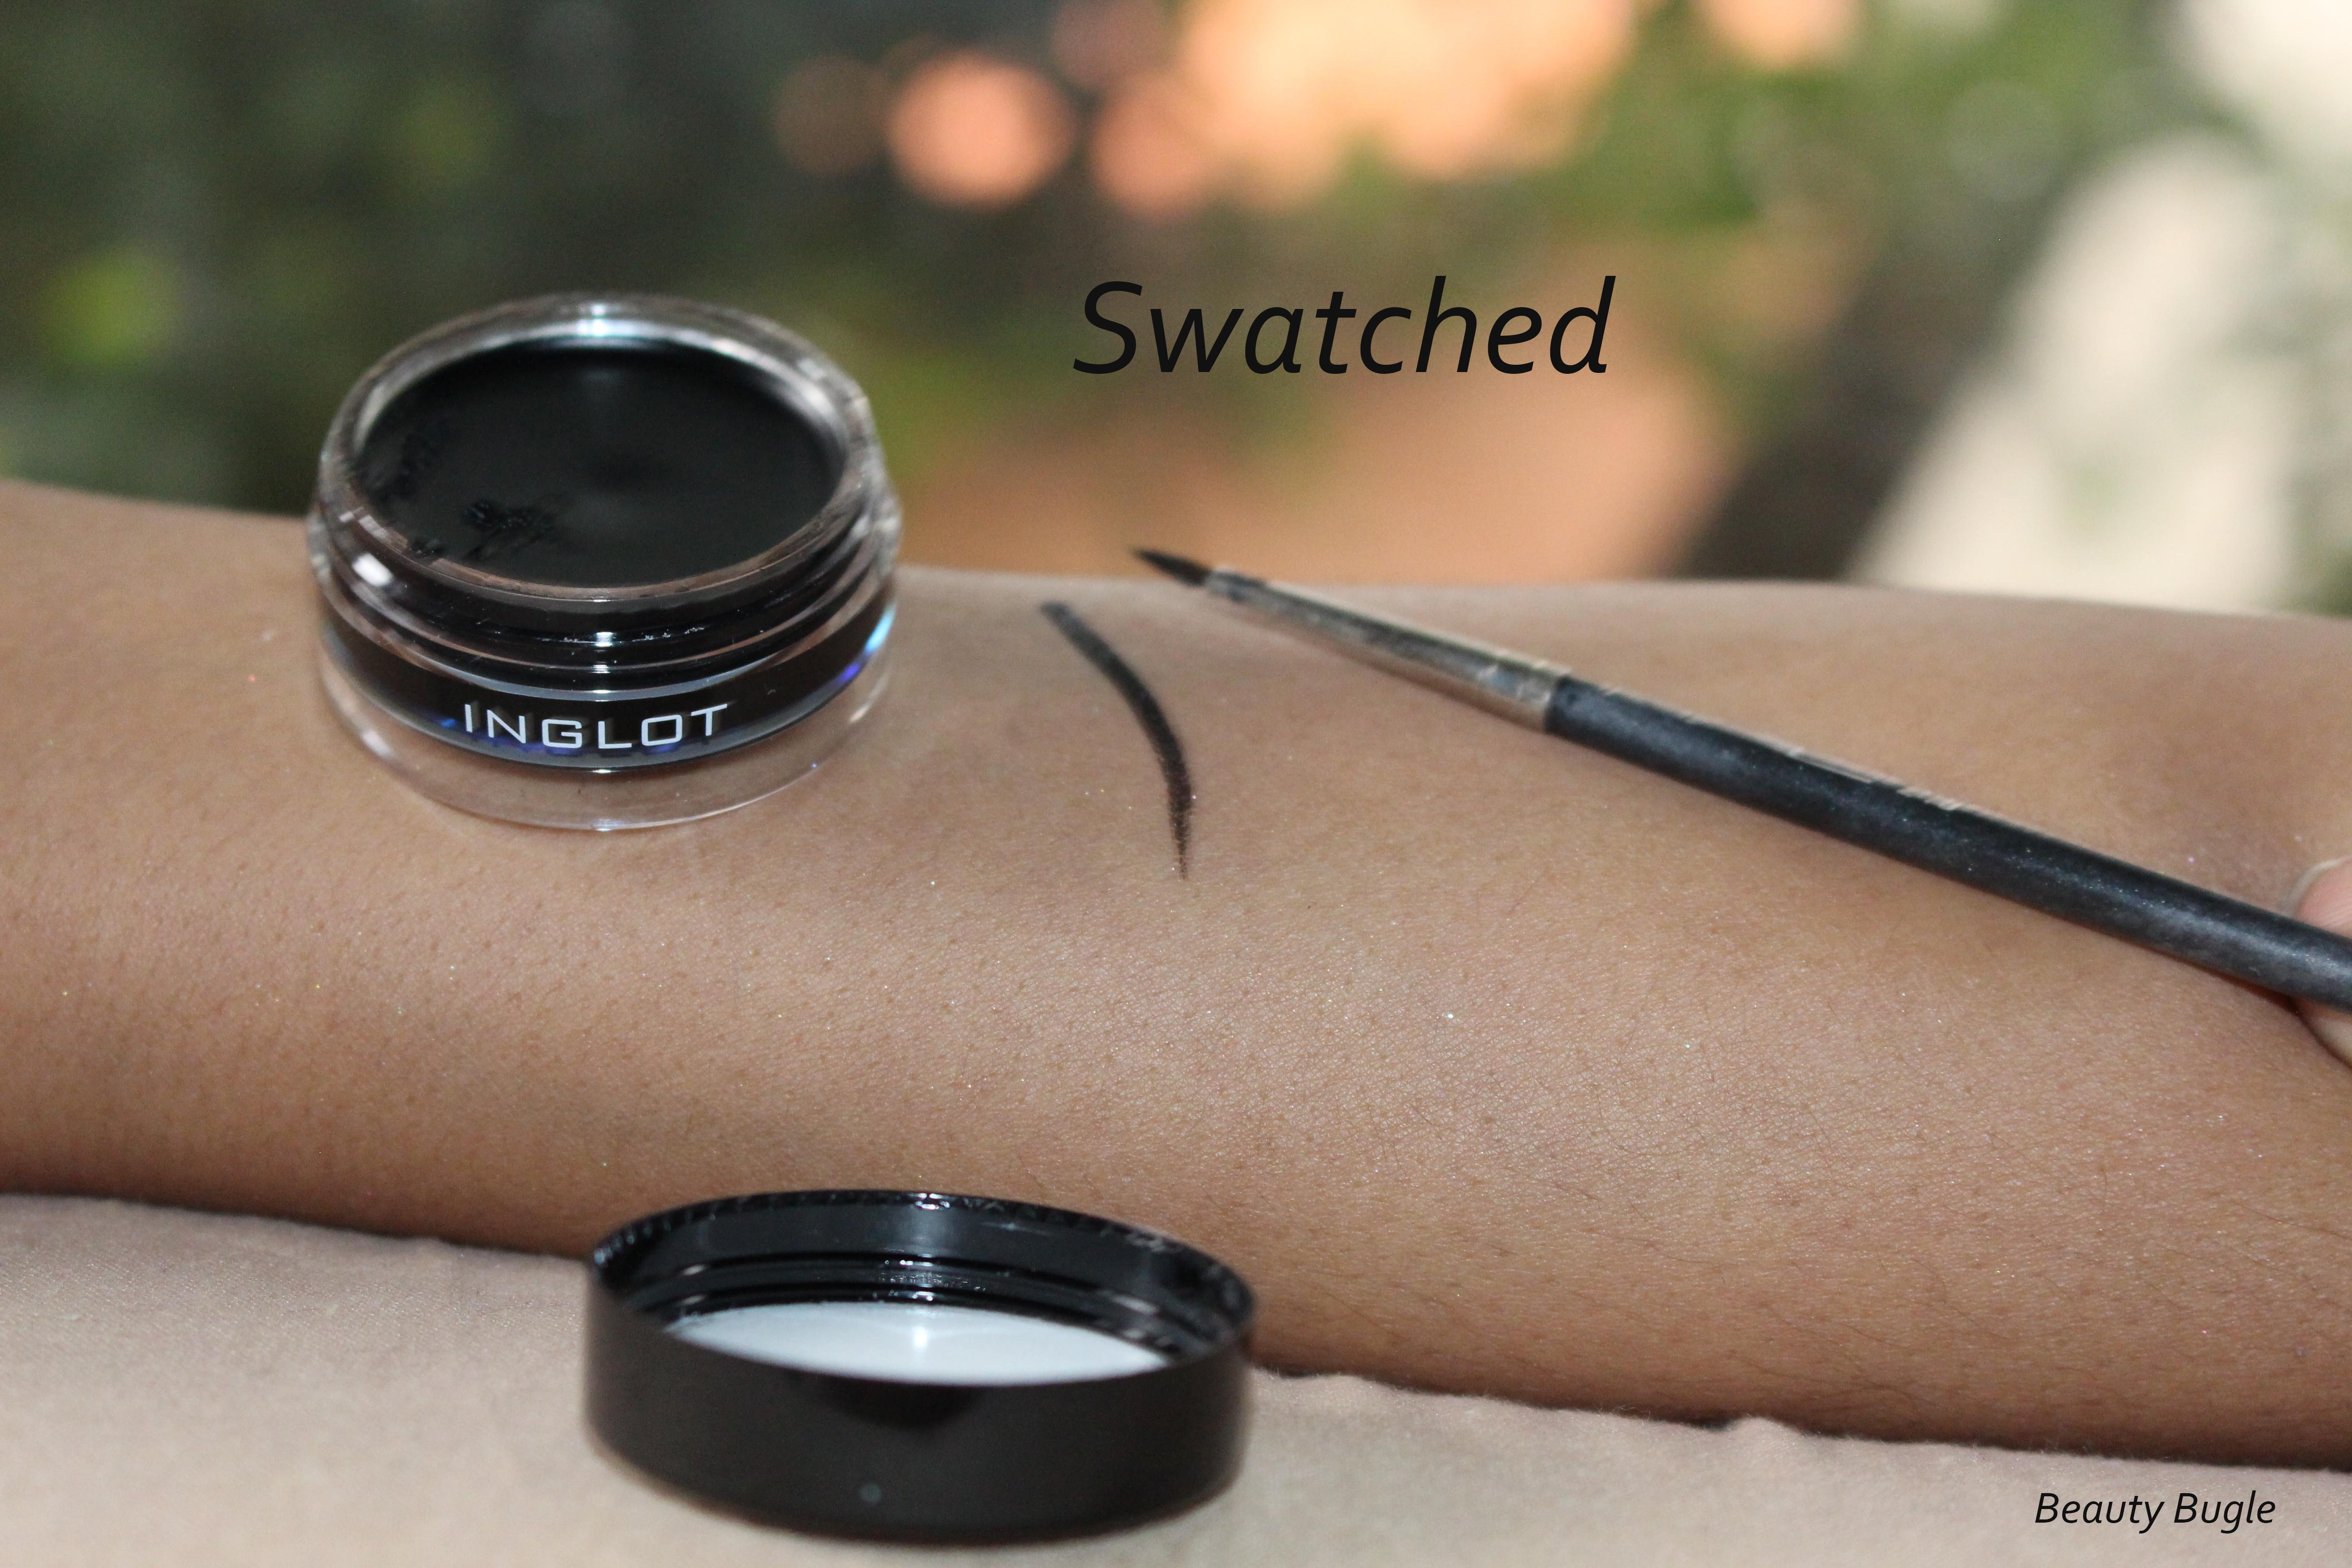 While difficult to use, the Ingot Eyeliner Gel 77 is the most intense black gel eyeliner shade I own. It is stunning.